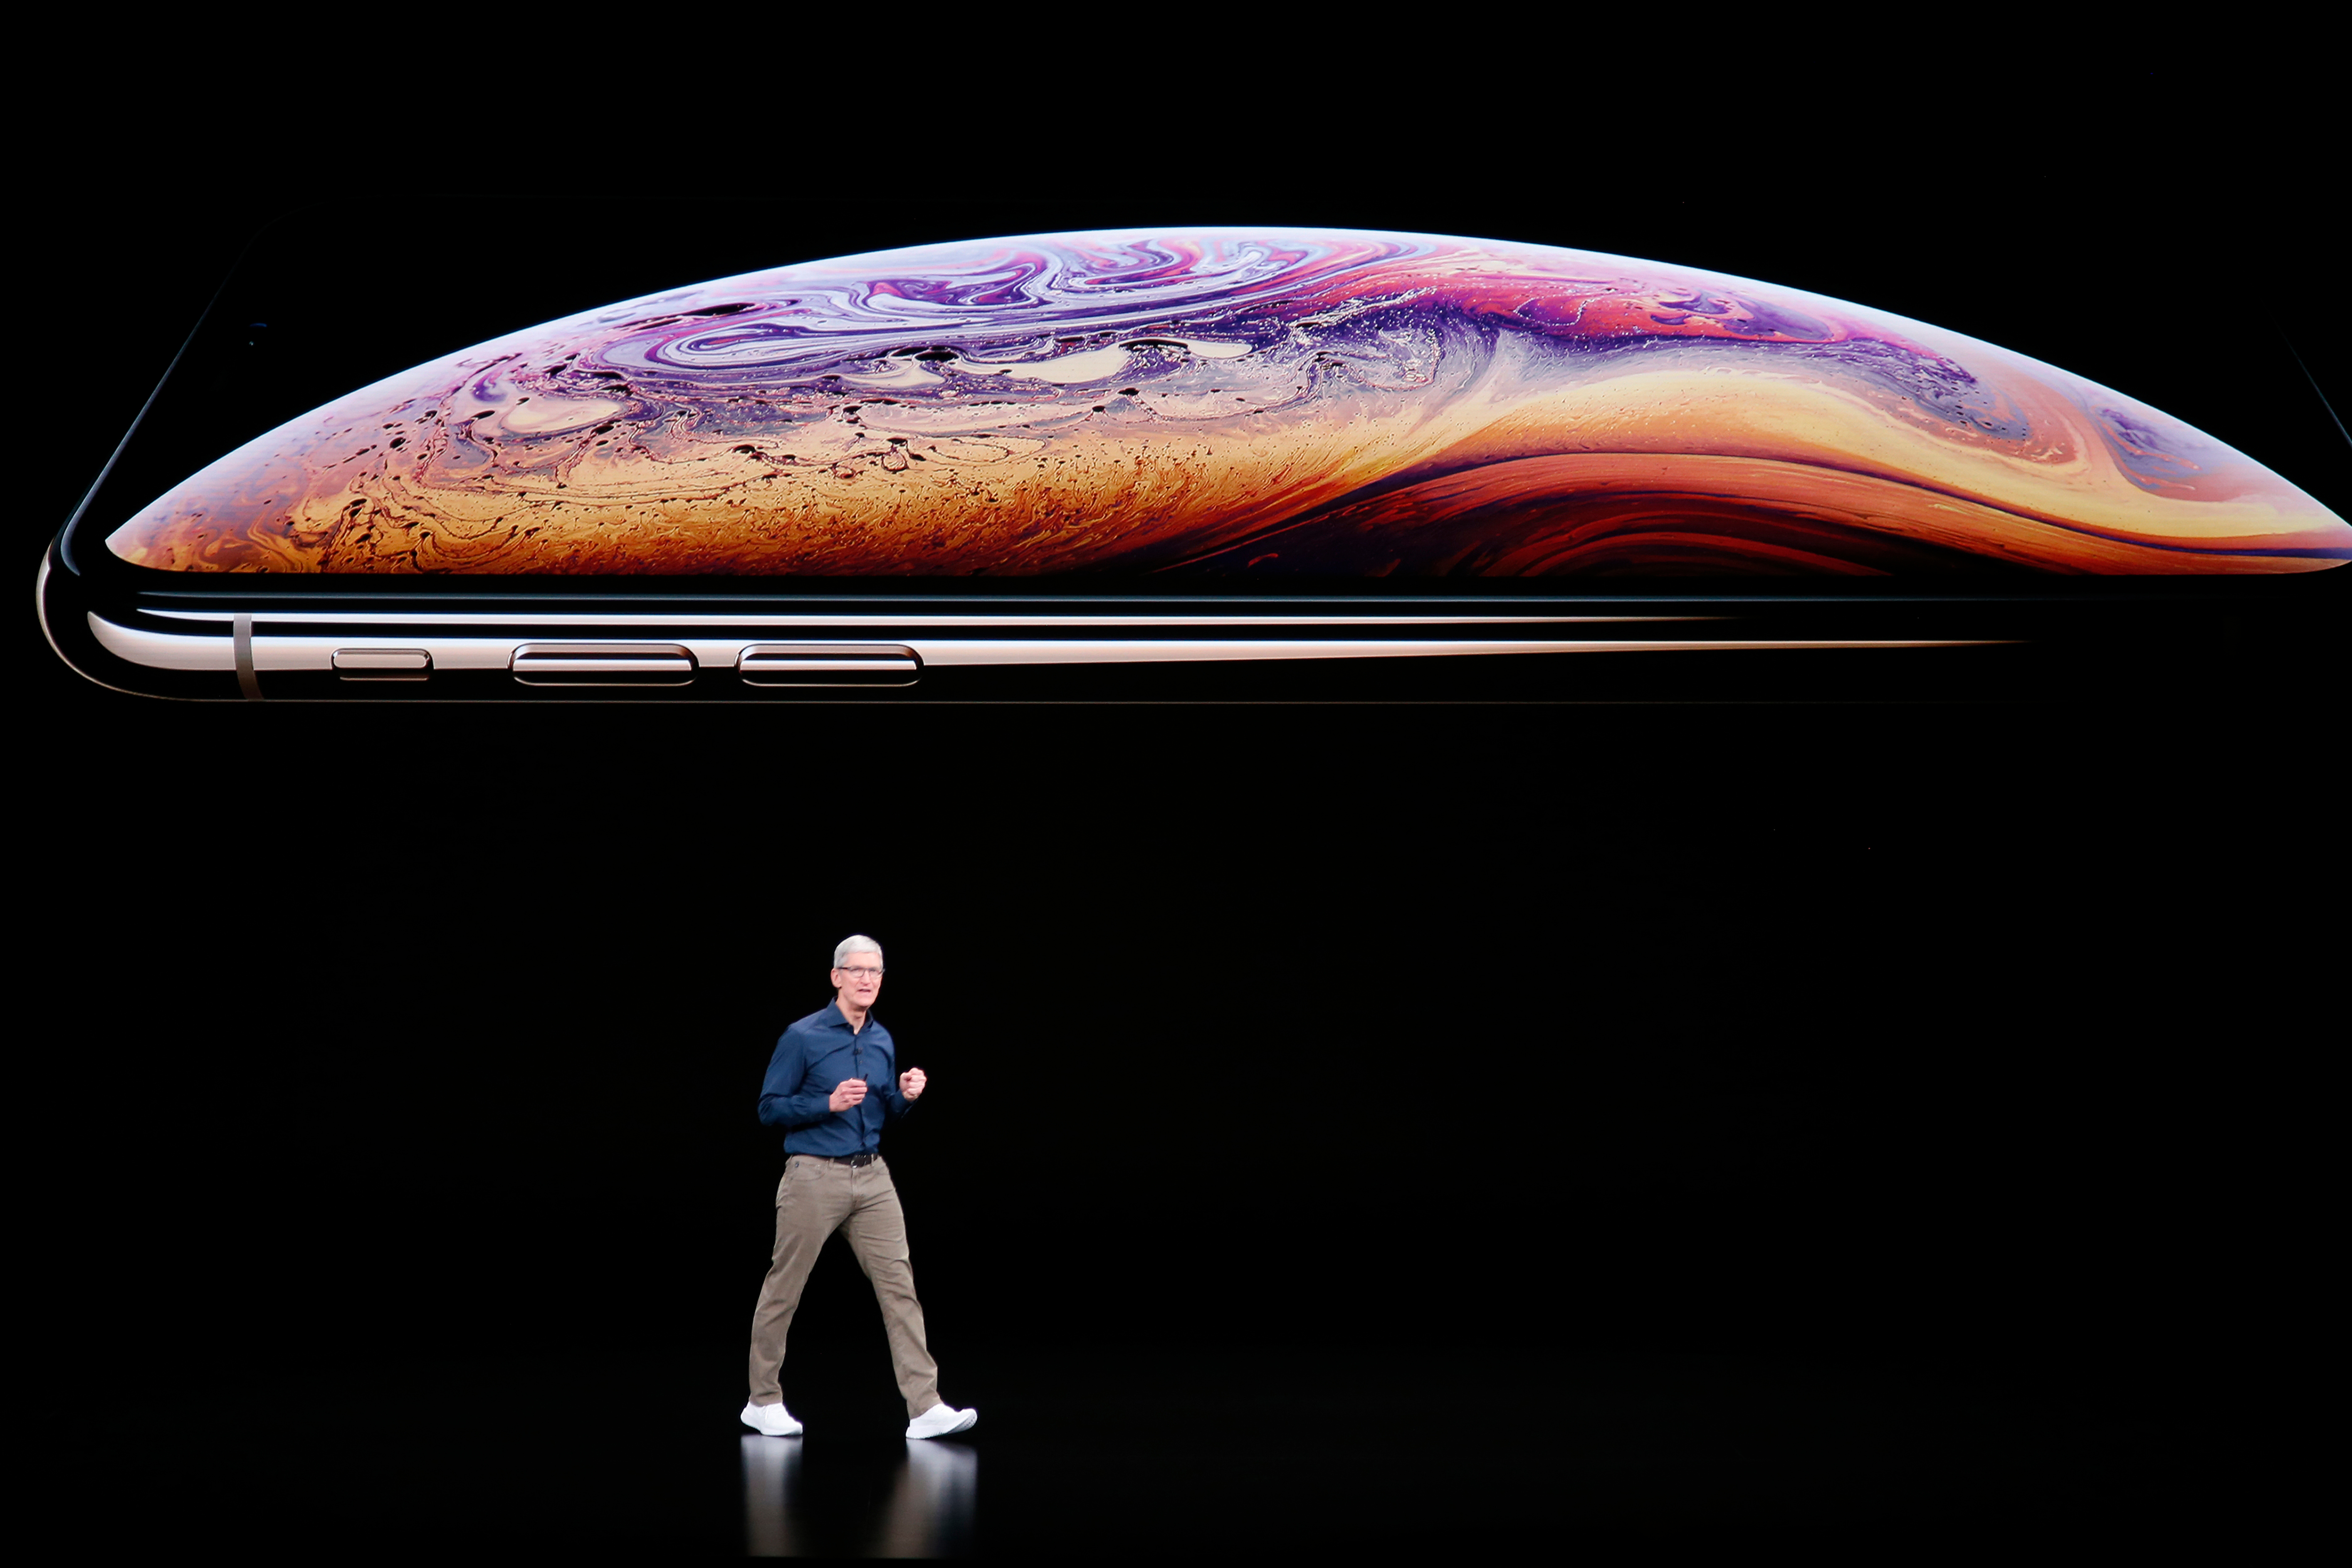 Tim Cook introduces Apple's new smartphone, the iPhone Xs, Wednesday, Sept. 12, 2018, at company headquarters in Cupertino, Calif.